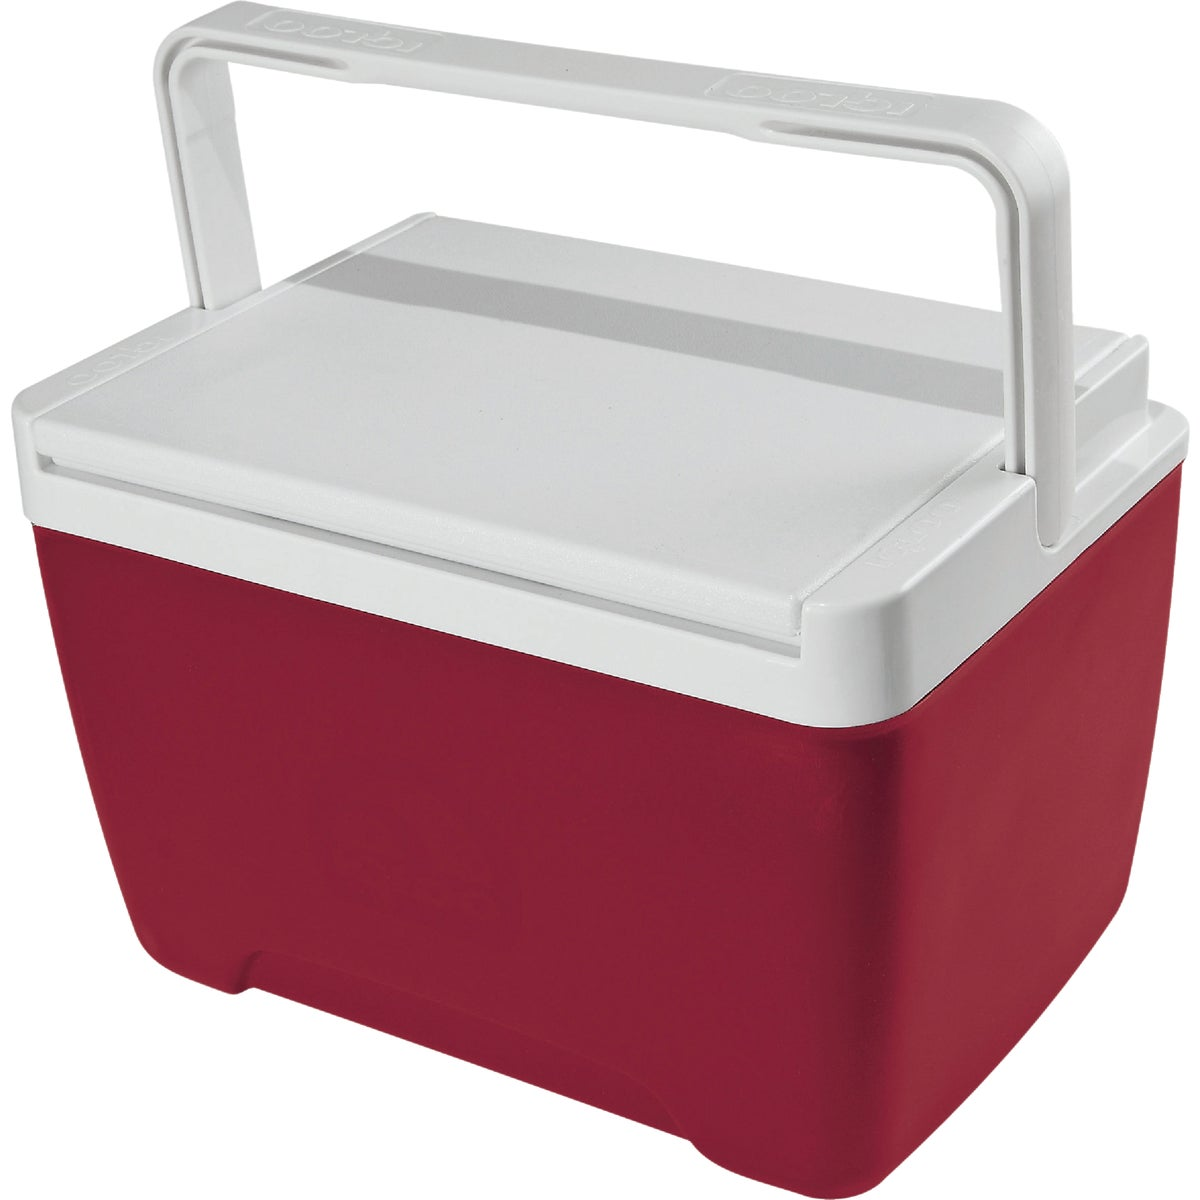 RED/WHT/BLU COOLER - 43261 by Igloo Corp